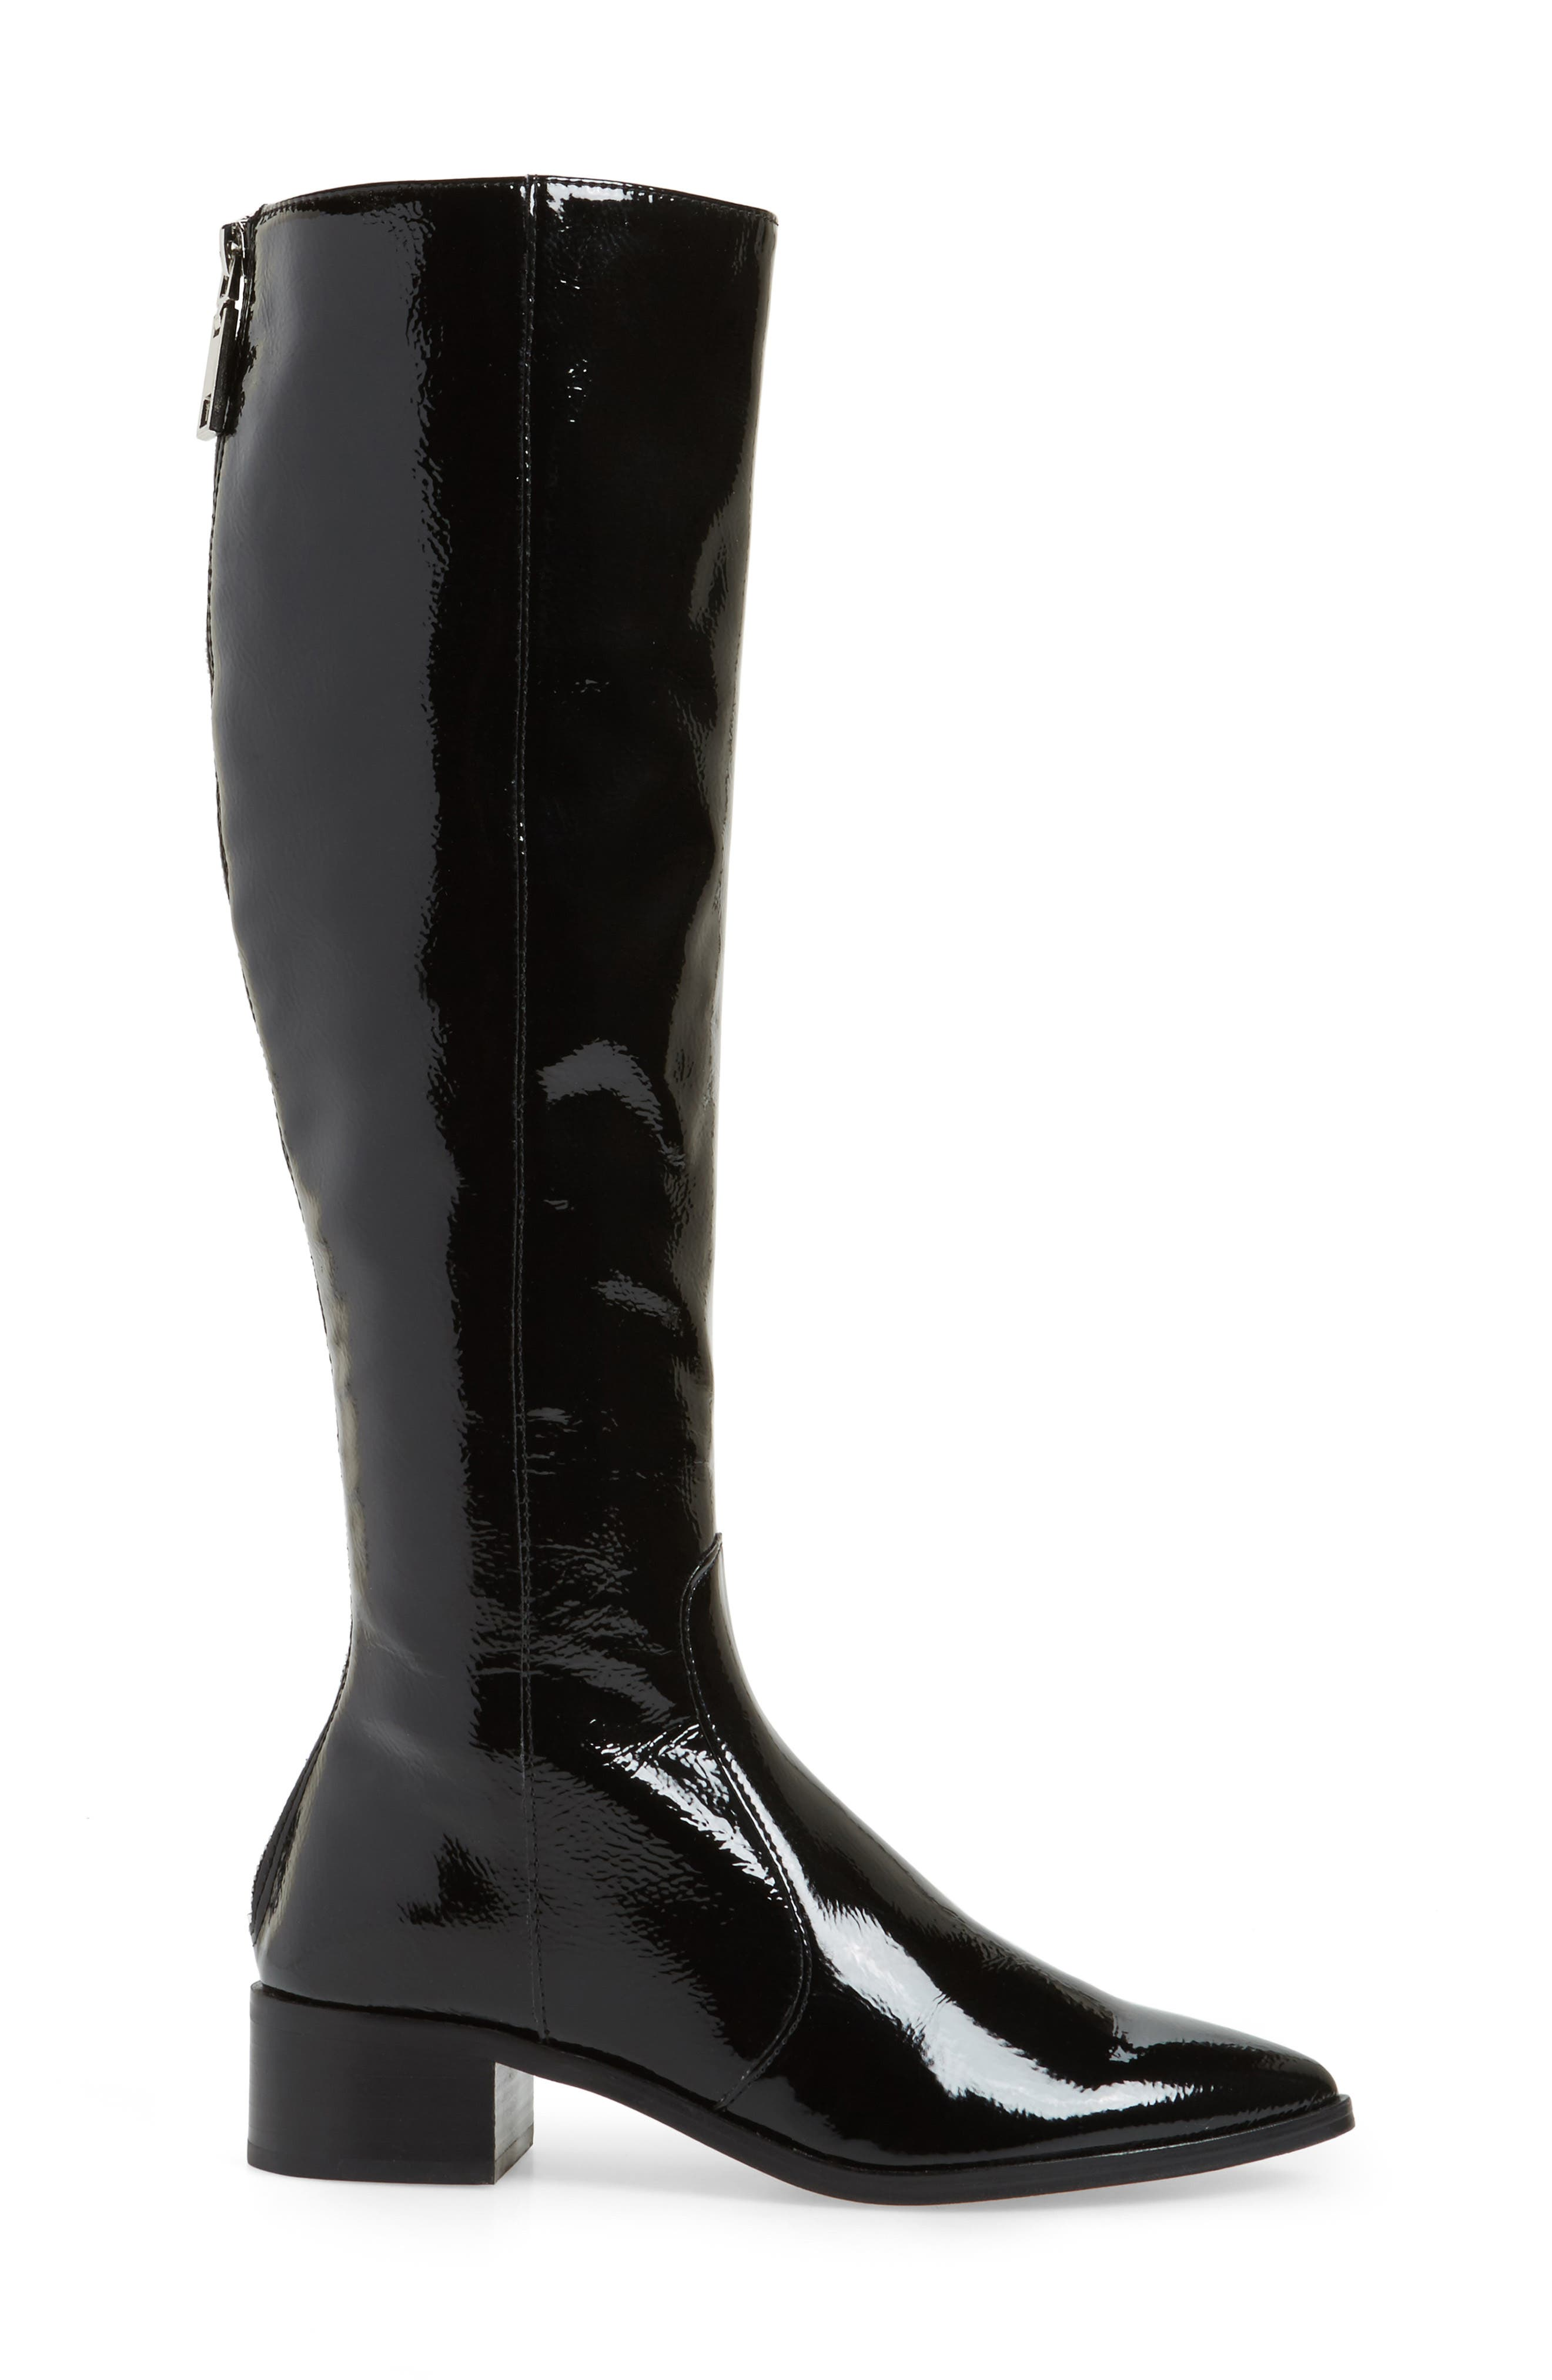 Morey Knee High Riding Boot,                             Alternate thumbnail 3, color,                             Onyx Patent